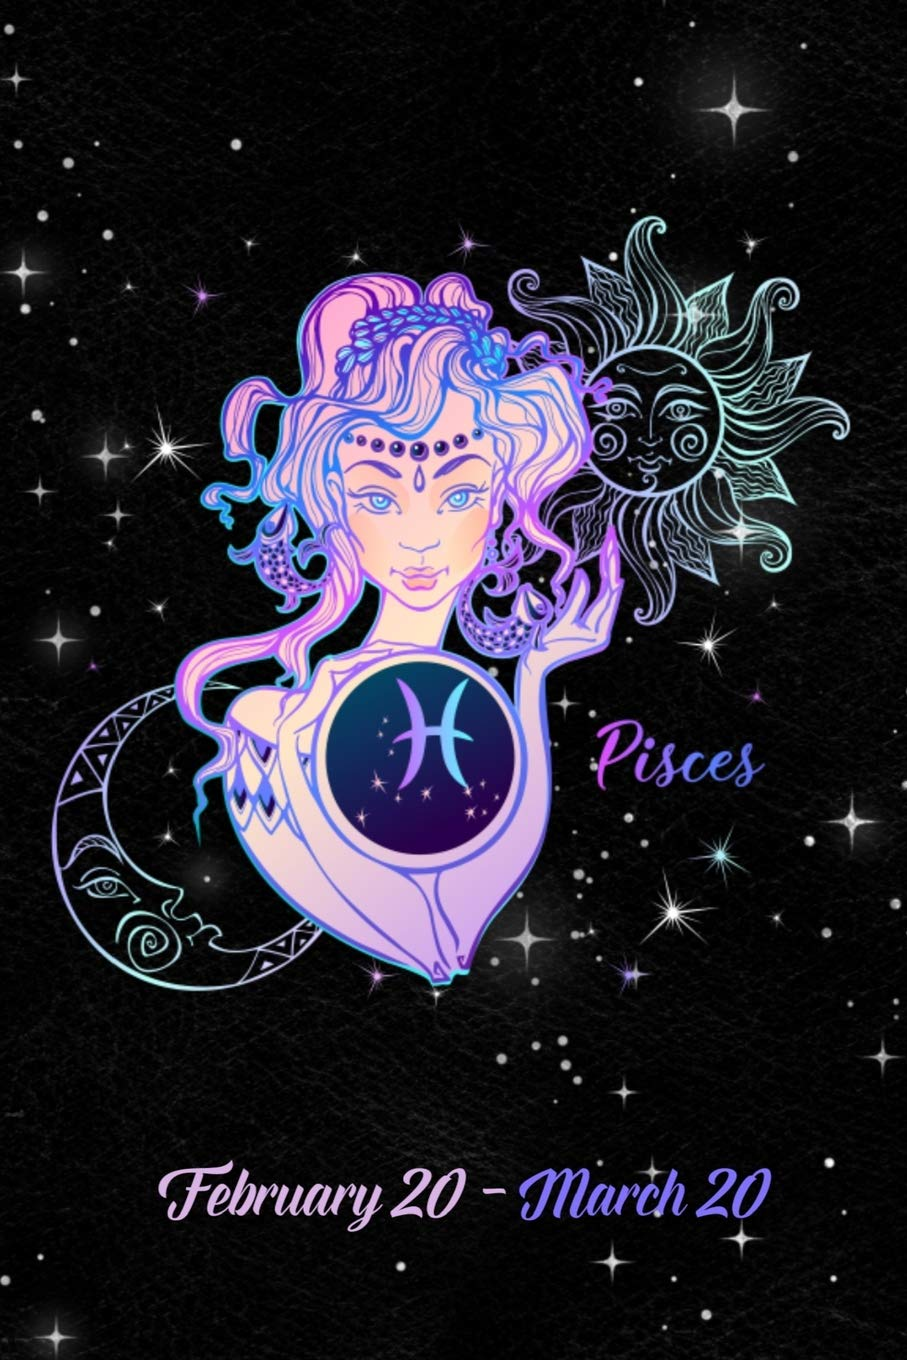 horoscope 17 march 2020 pisces